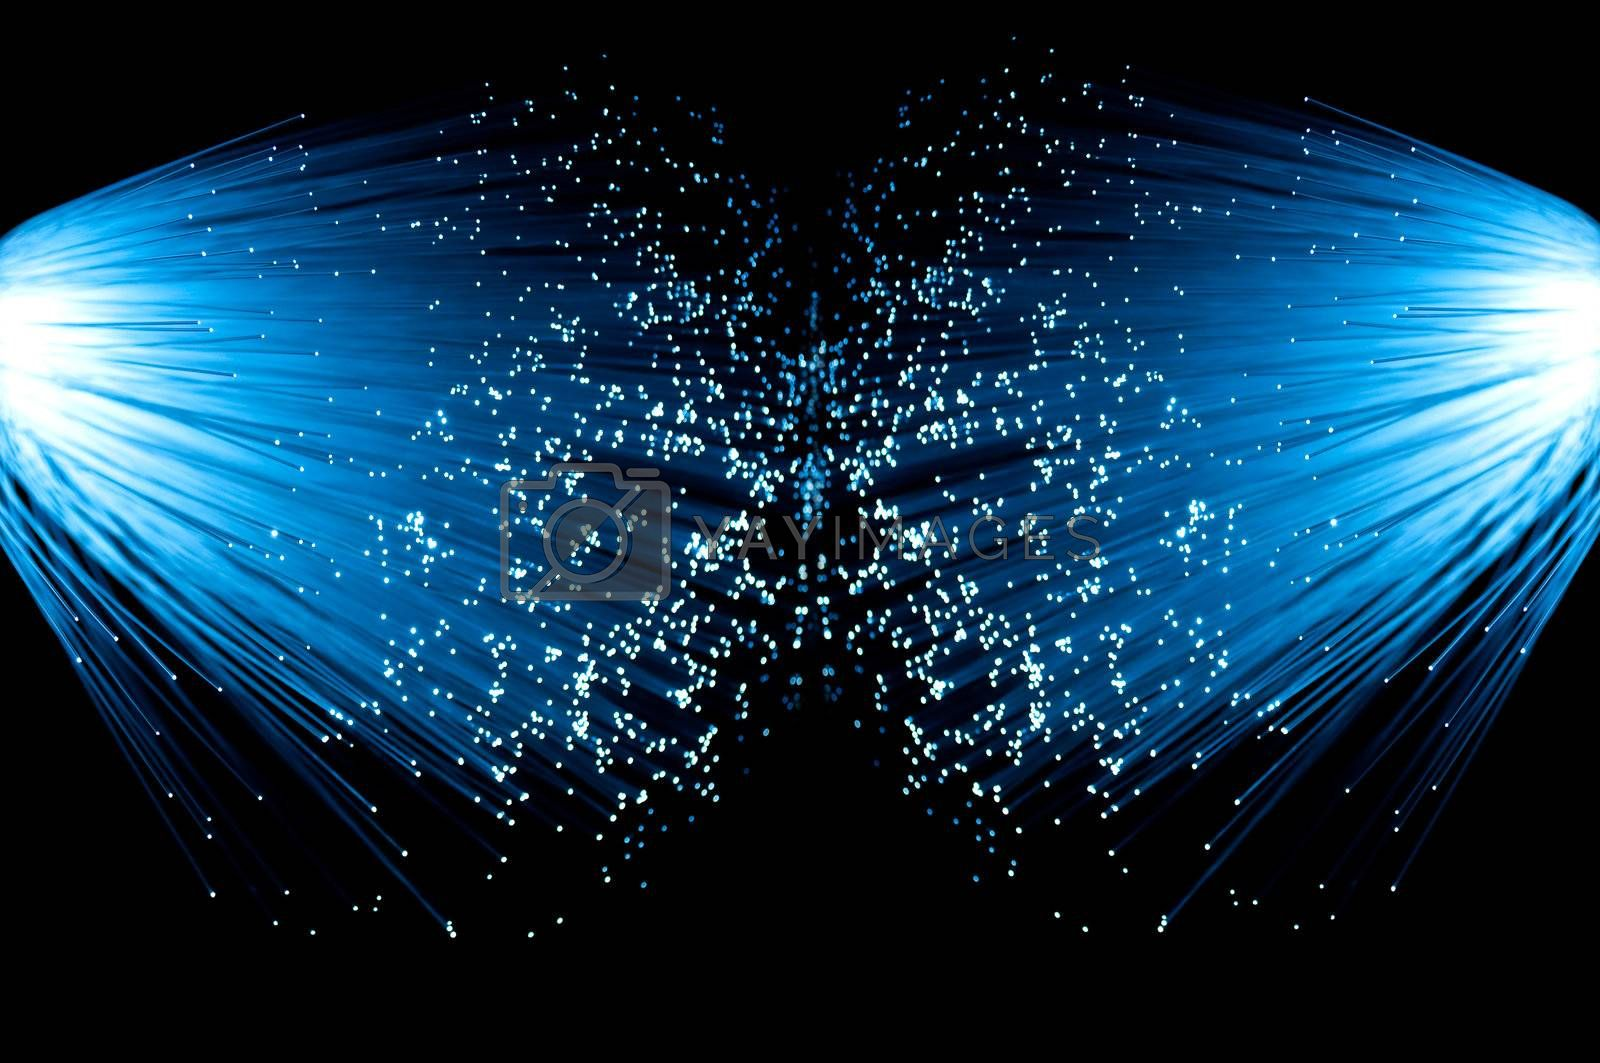 Two illuminated groups of blue fibre optic strands emanating from the left and right of the image. Black background.